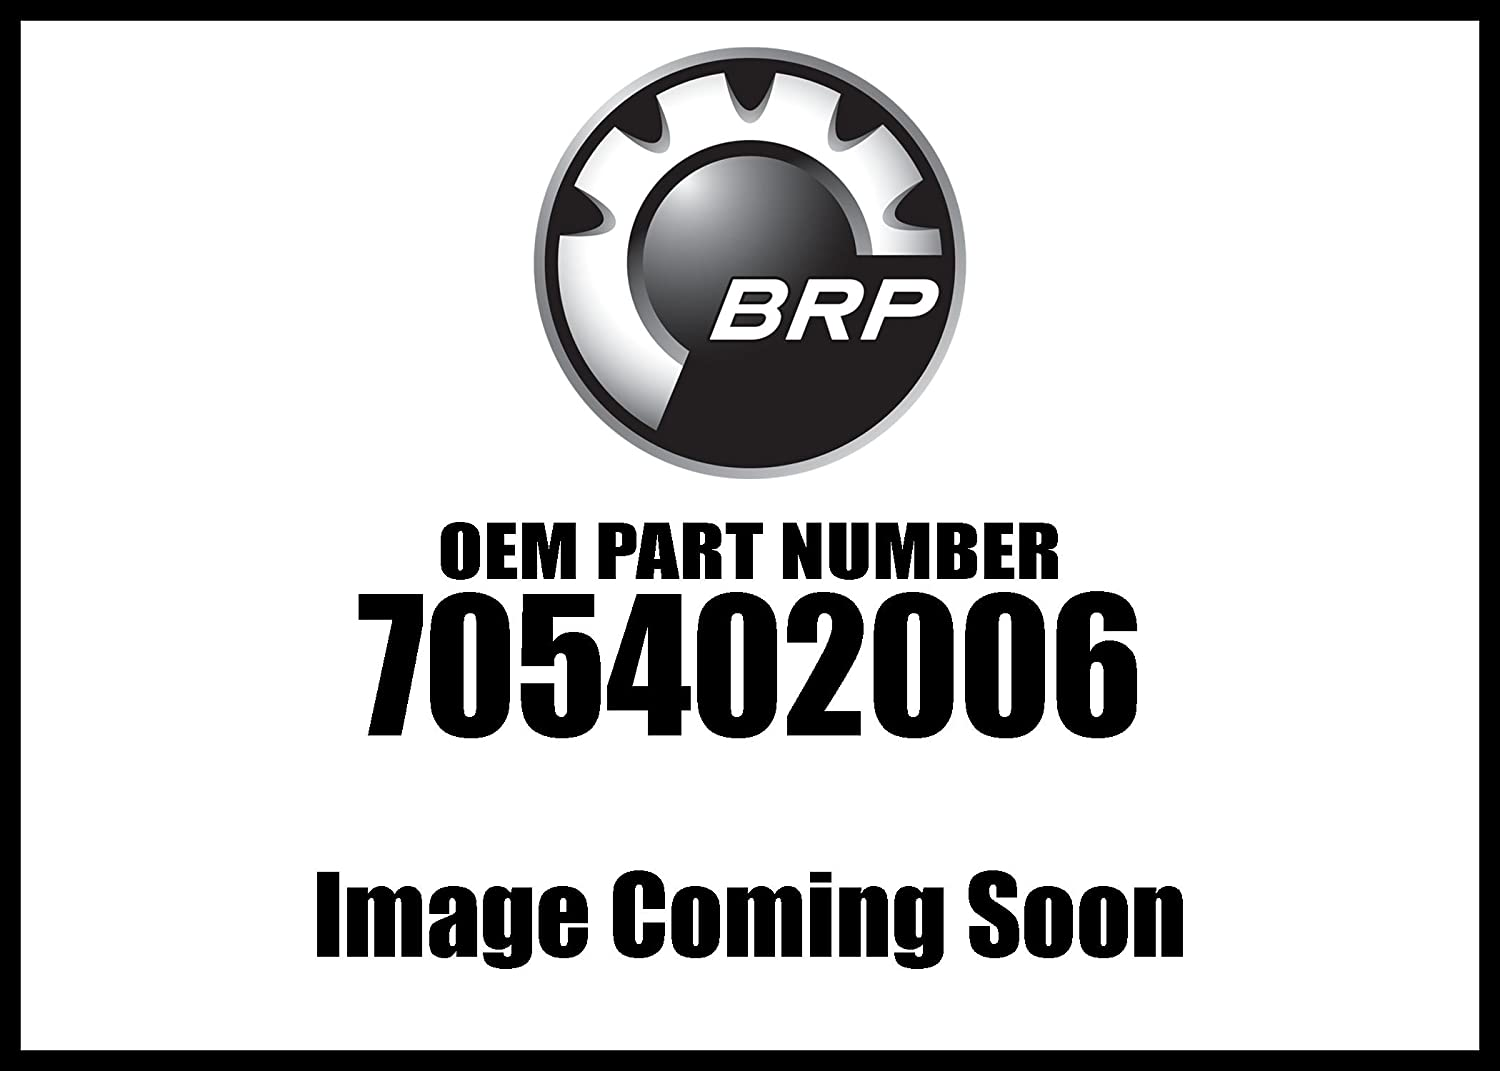 Can-Am 2018 Maverick Trail 800R Prop Shaft Assembly 705402006 New Oem